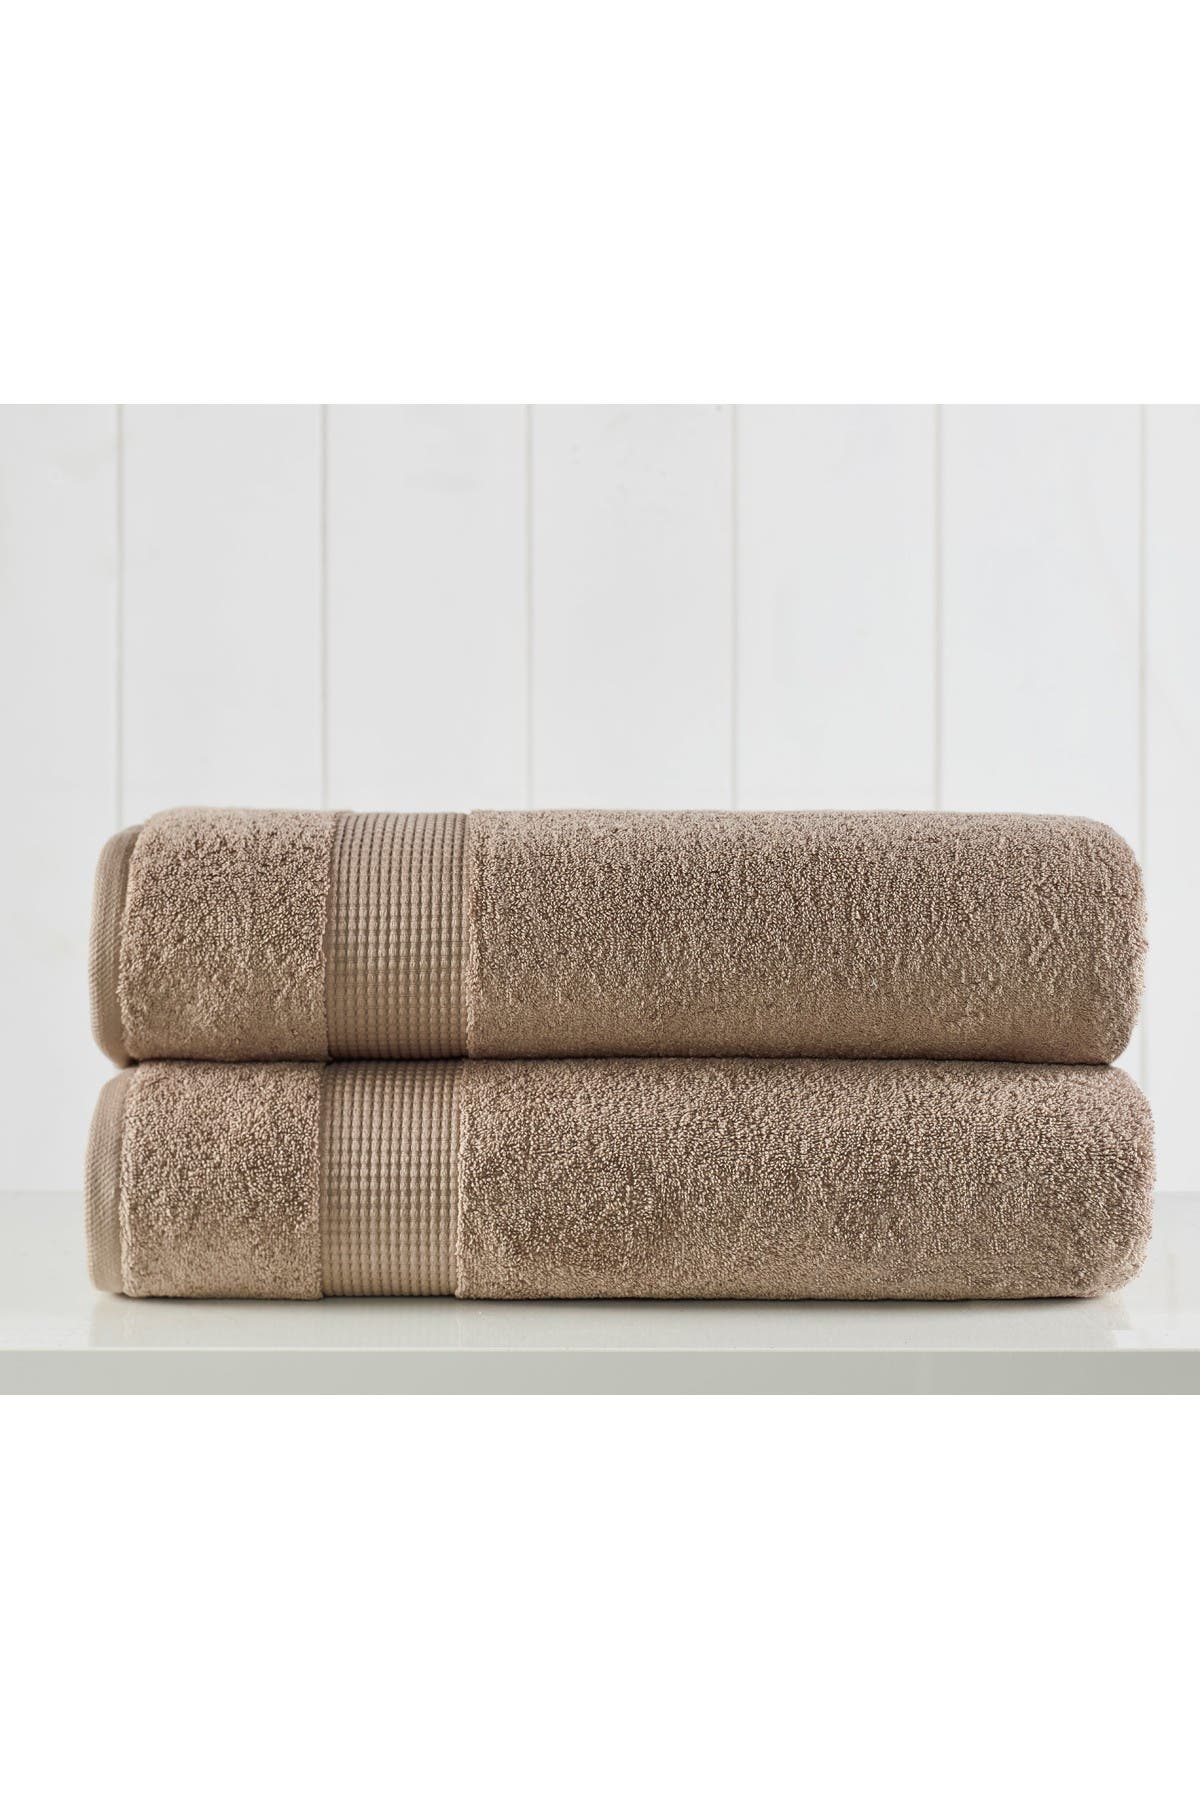 Image of Modern Threads Manor Ridge Turkish Cotton 2 Pack Bath Sheet Set - Taupe